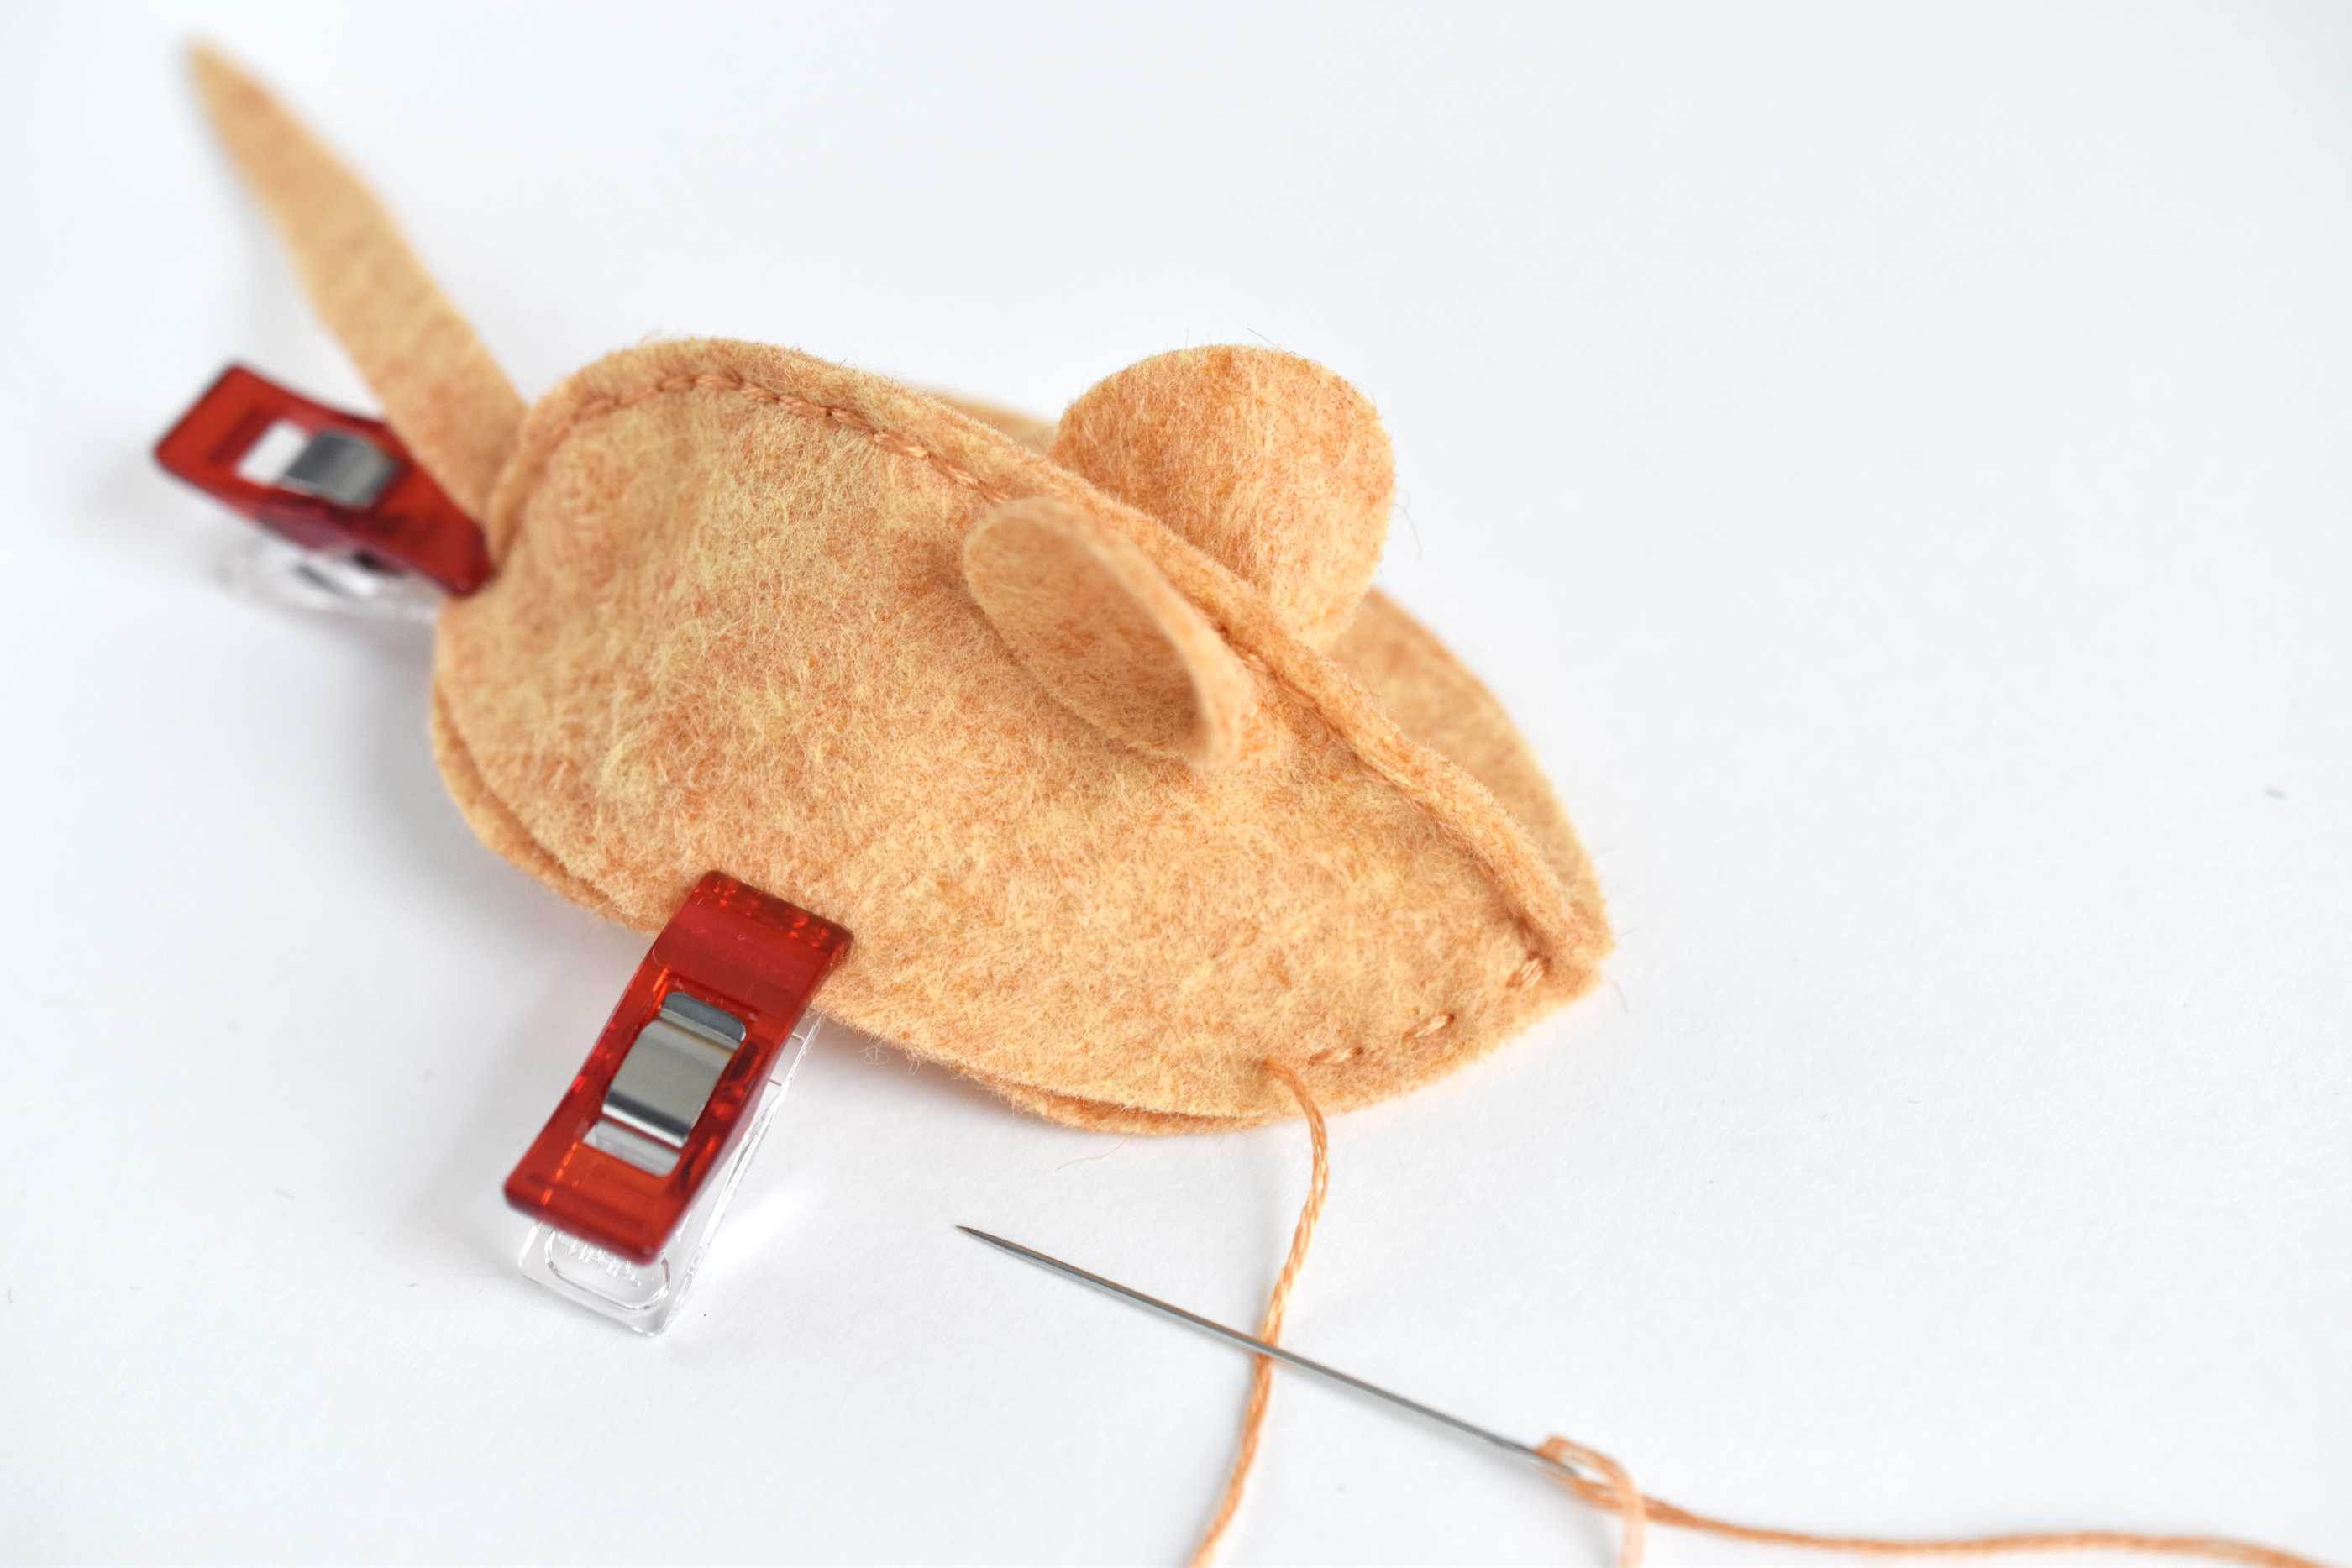 A homemade cat toy